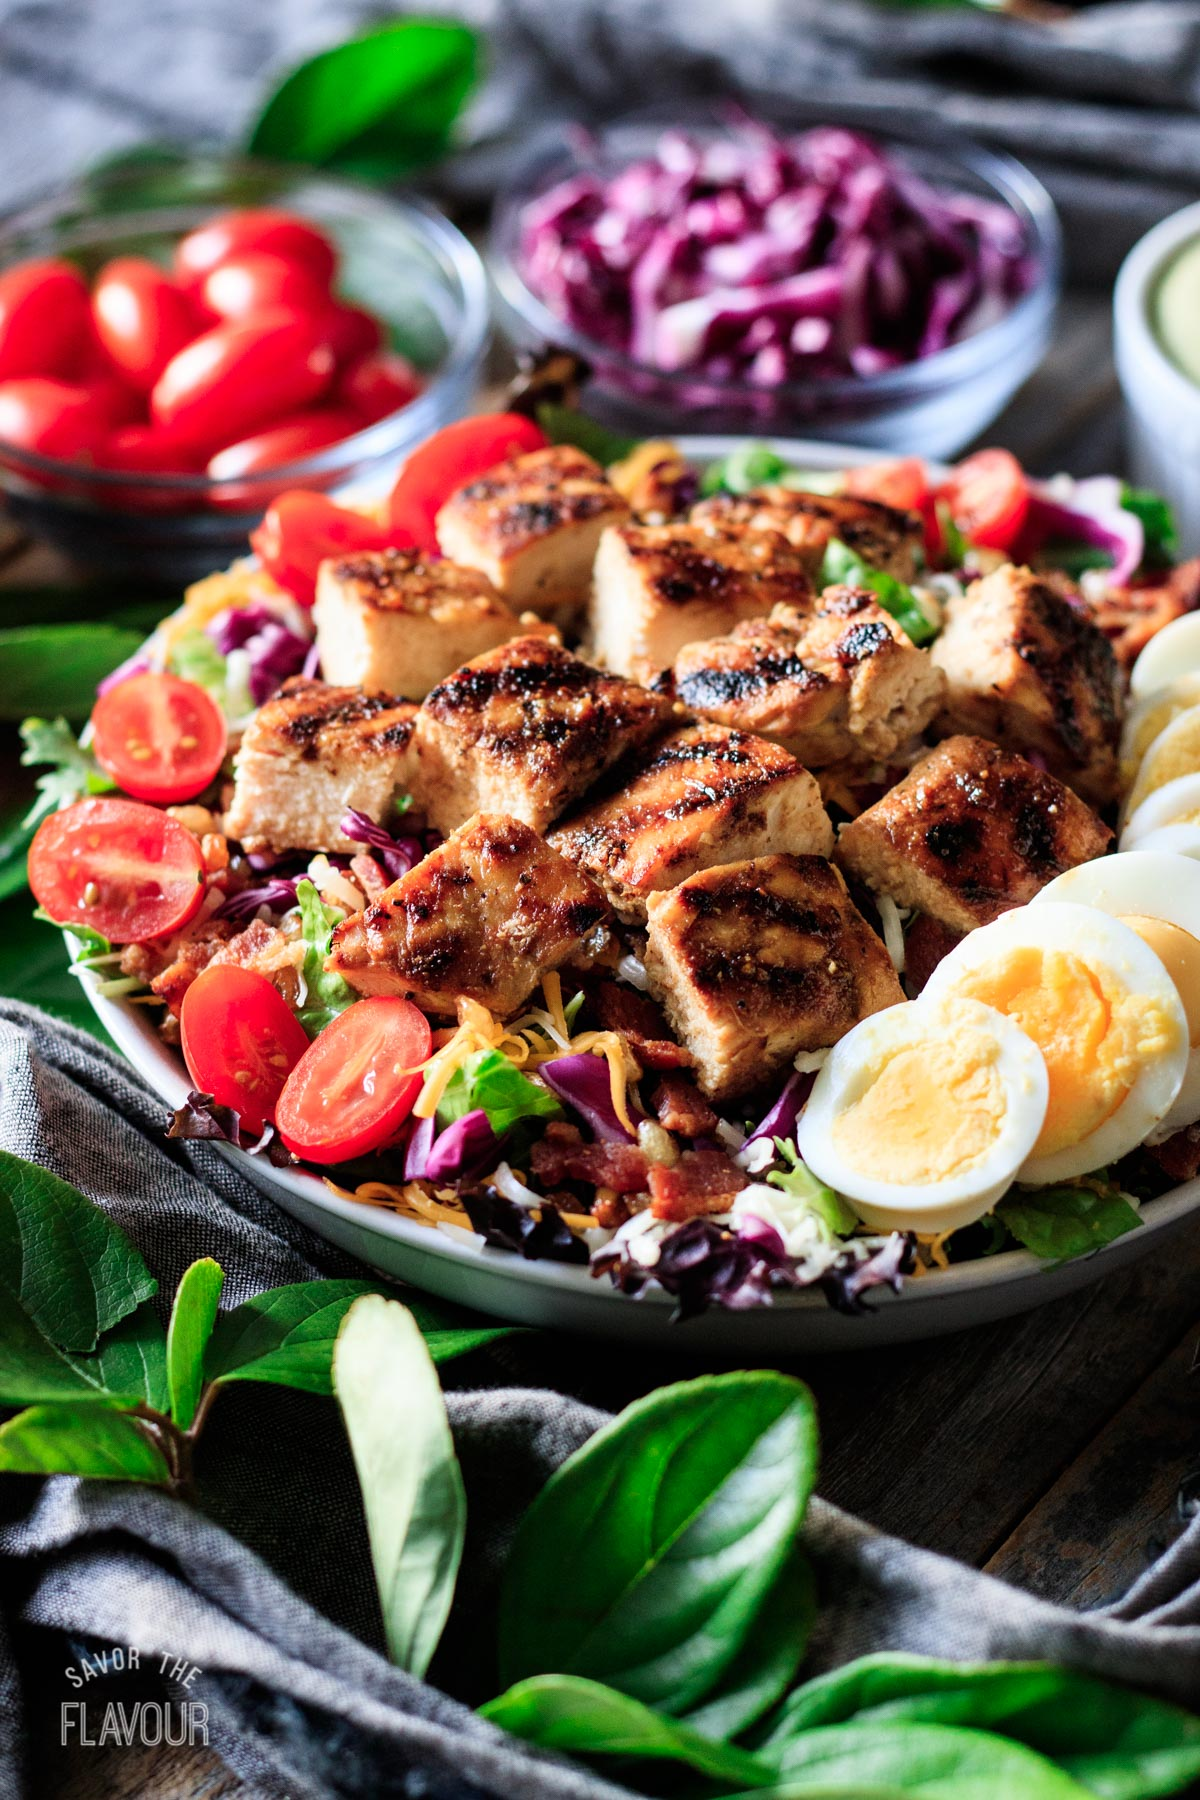 Chick-fil-A Cobb salad with bowls of toppings